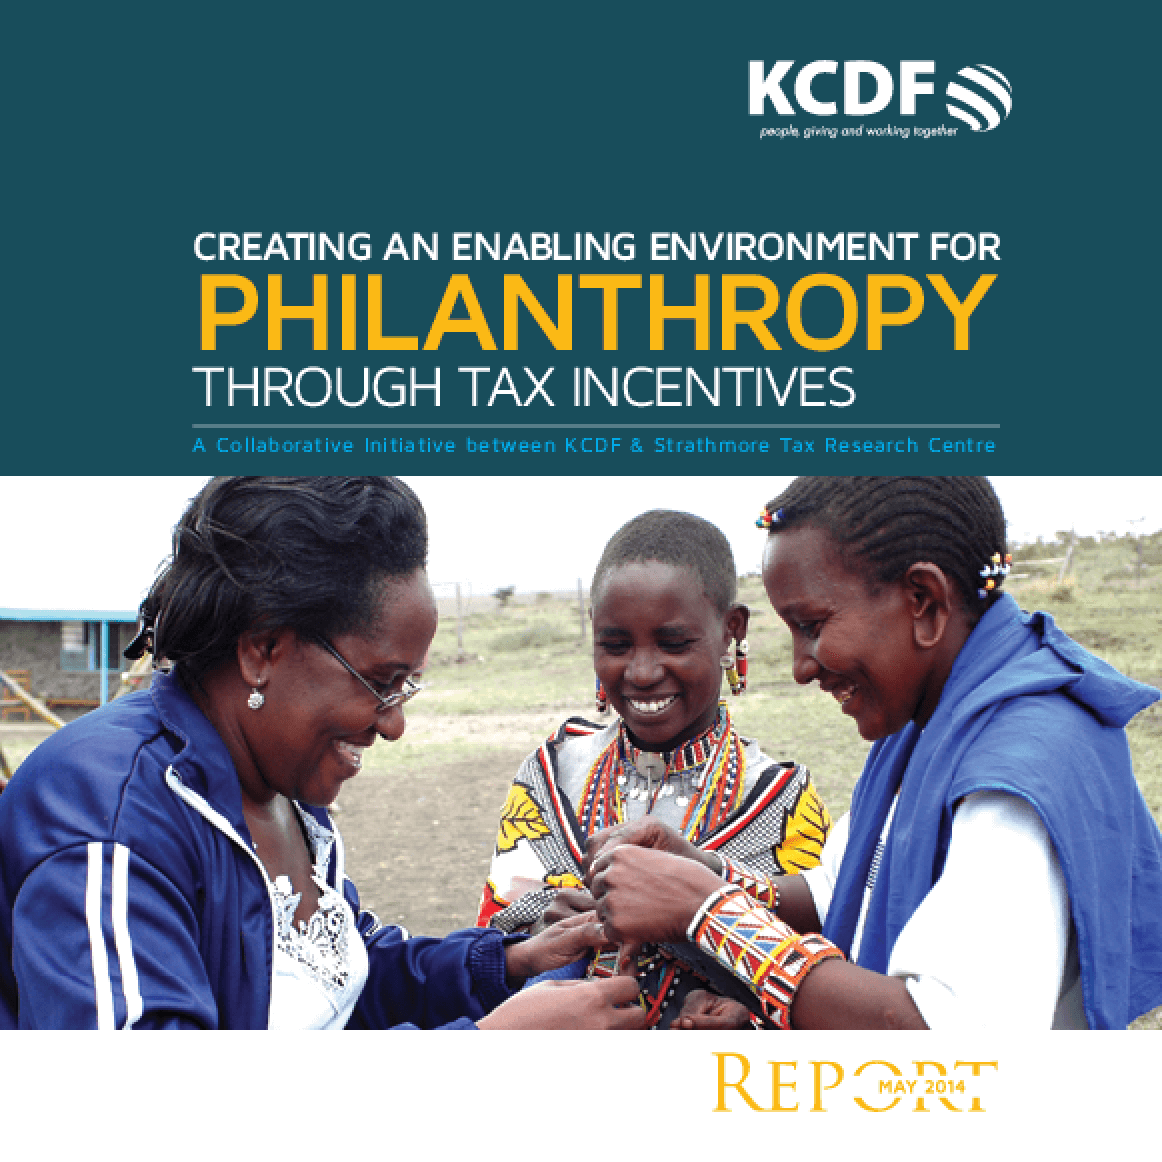 Creating an Enabling Environment for Philanthropy through Tax Incentives